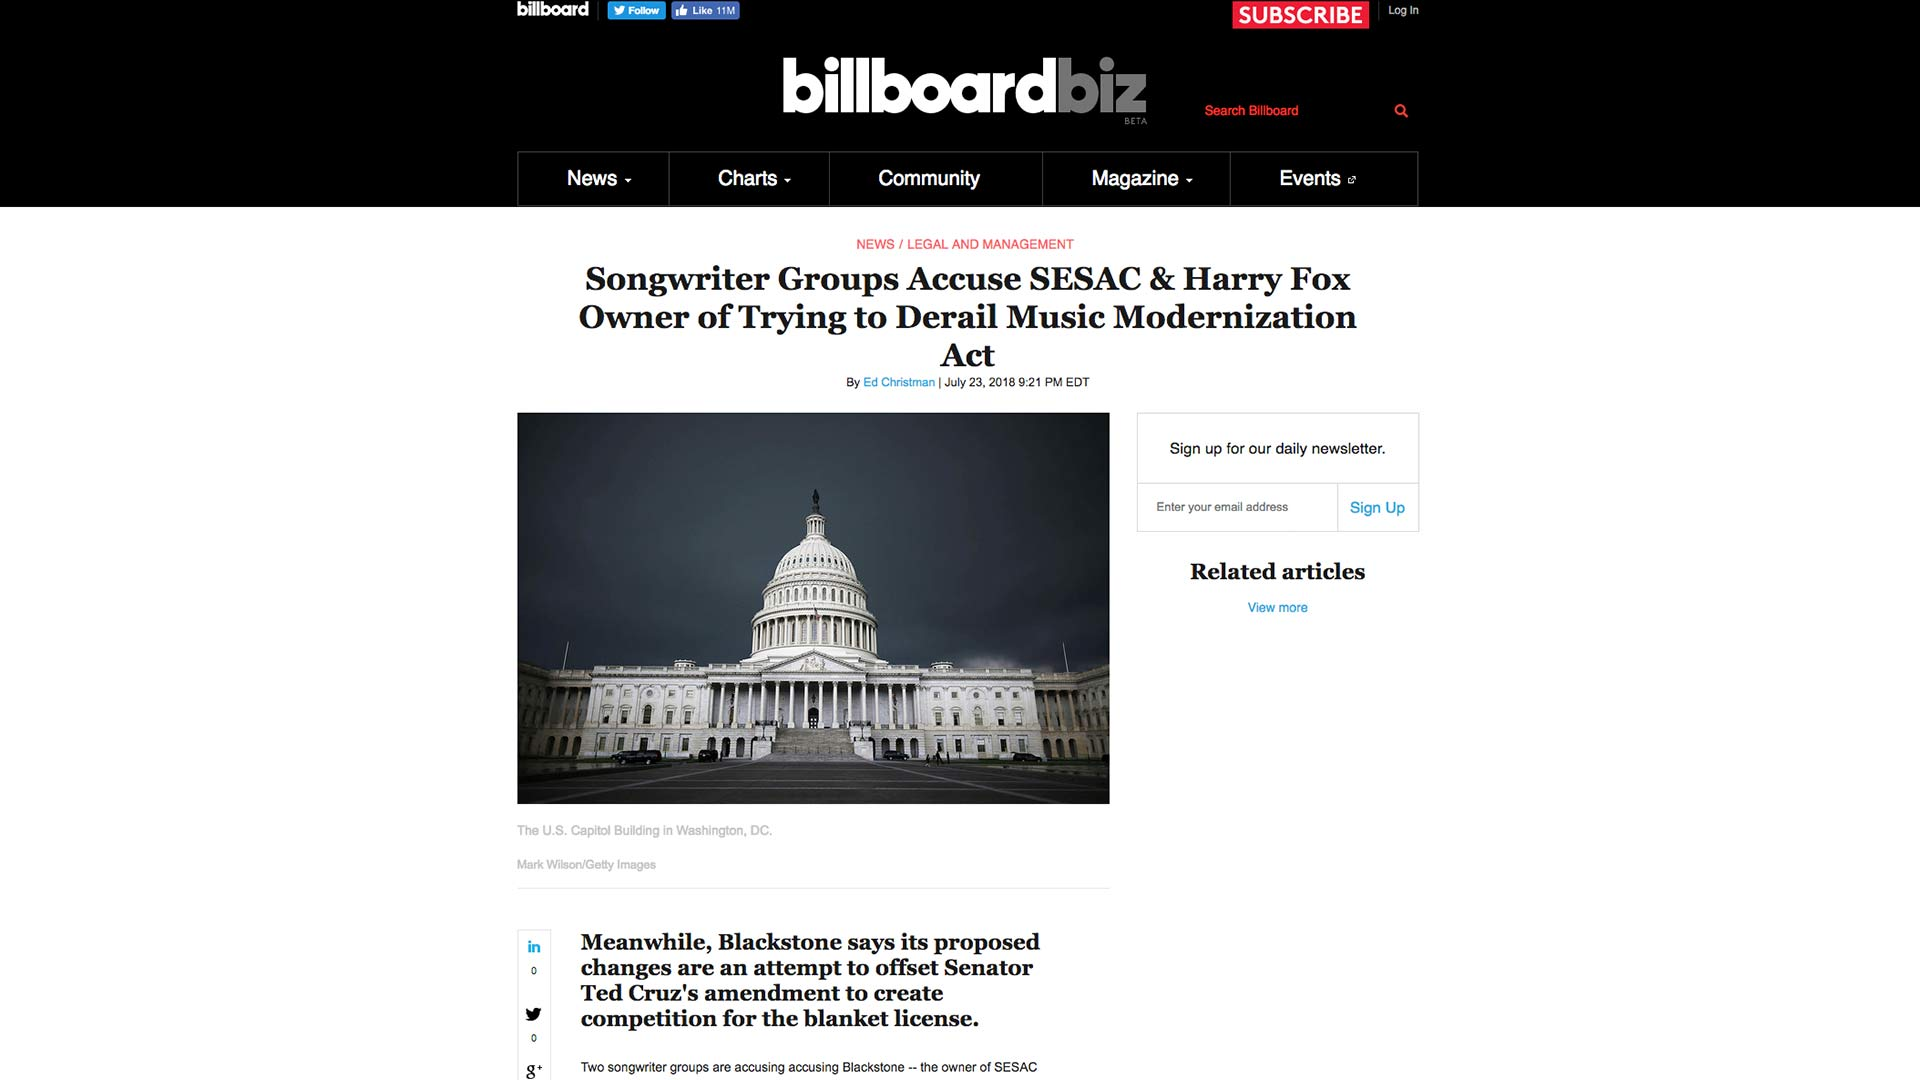 Fairness Rocks News Songwriter Groups Accuse SESAC & Harry Fox Owner of Trying to Derail Music Modernization Act